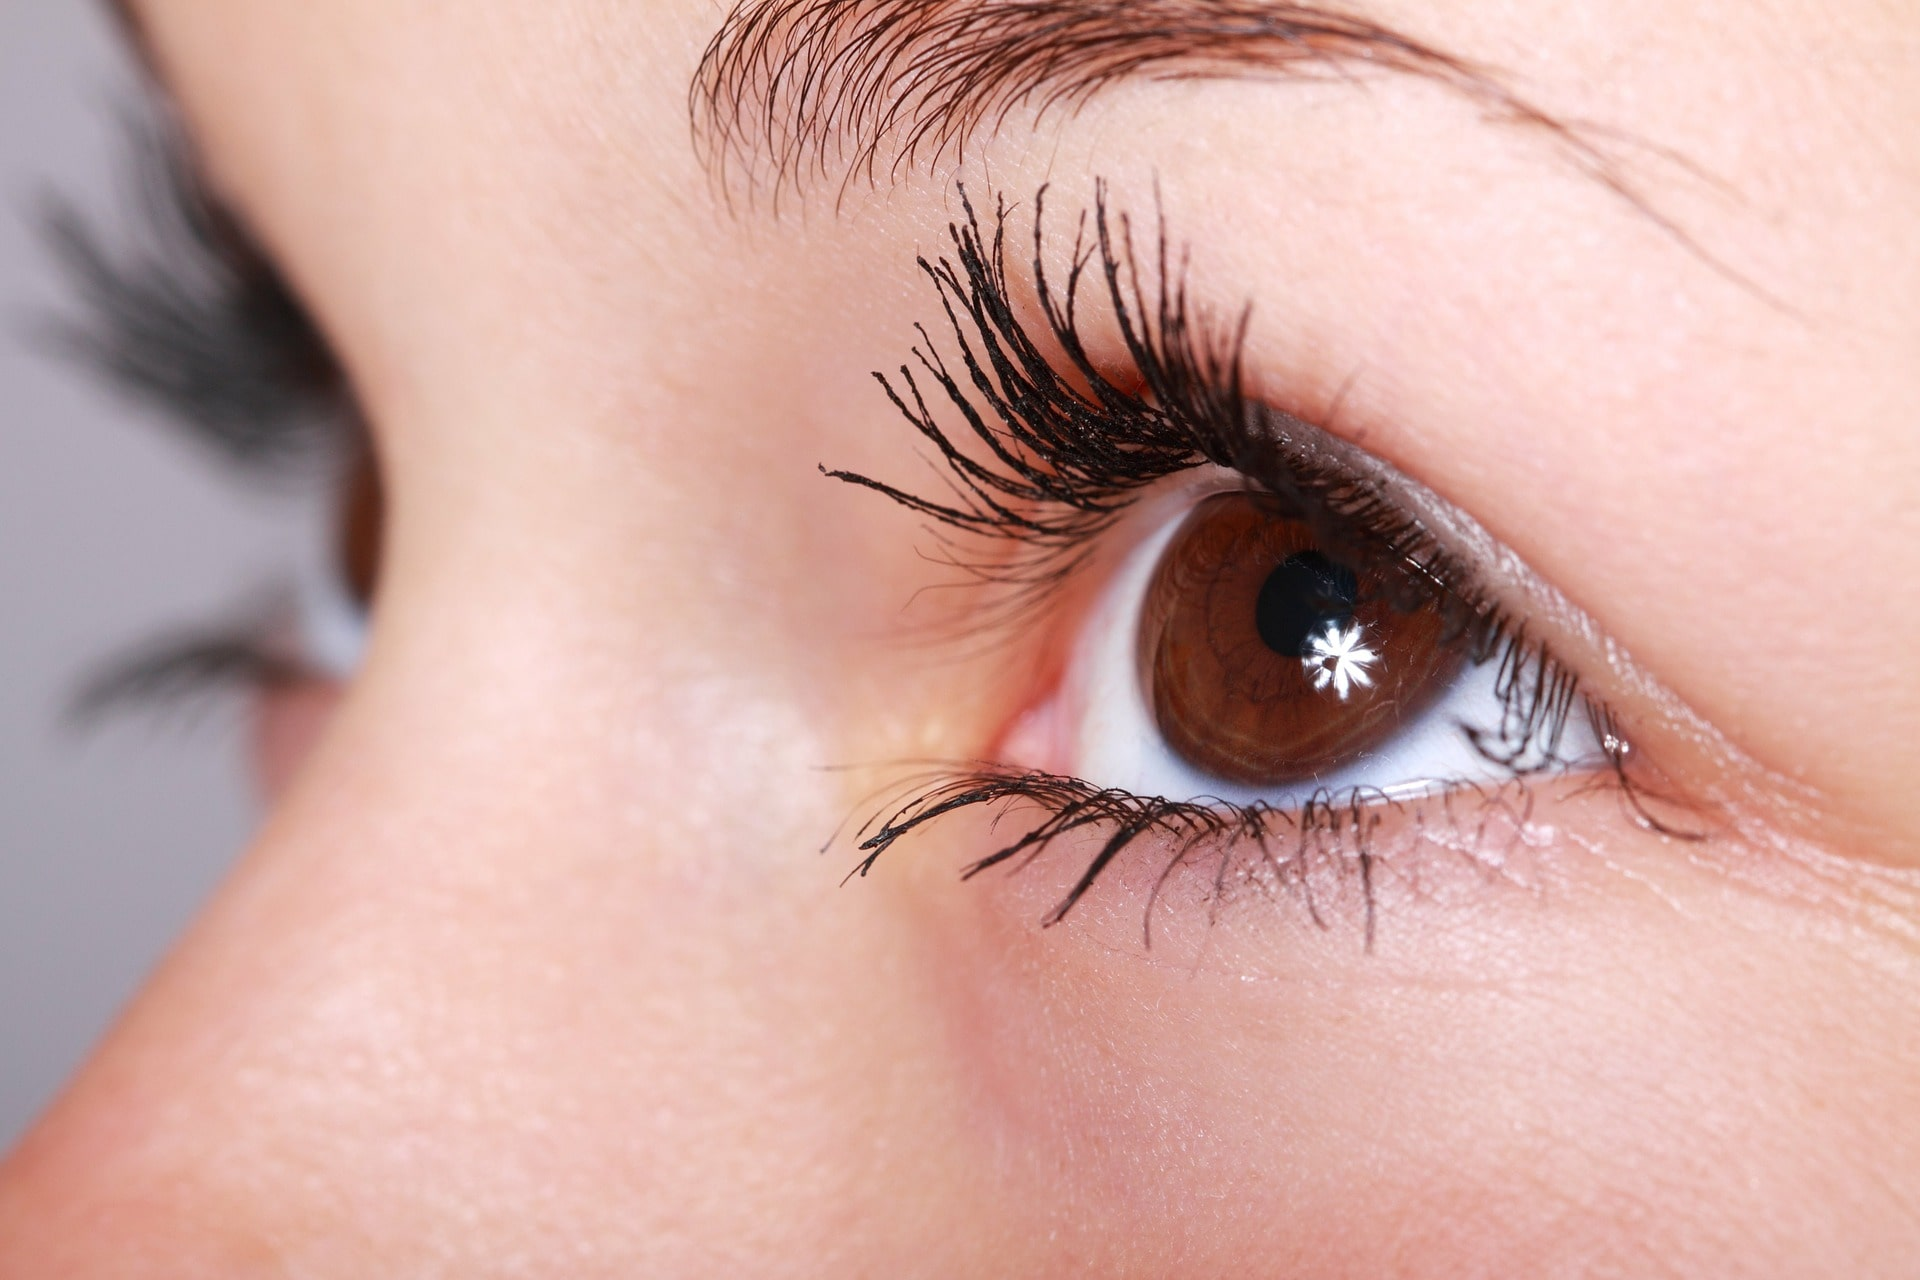 The eyes with long eyelash and brown color.